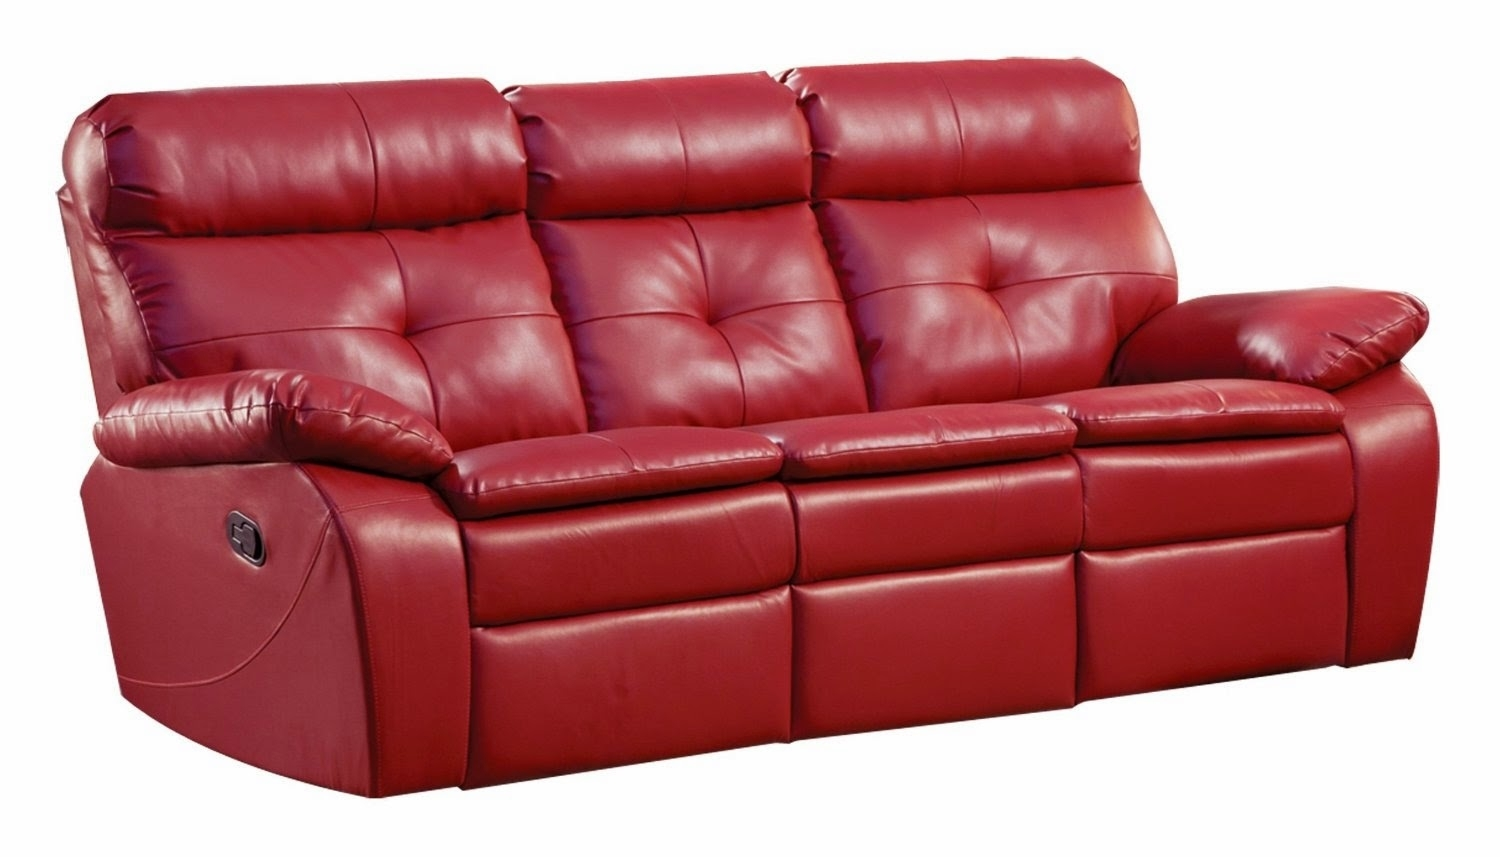 The Best Reclining Sofa Reviews: Red Leather Reclining Sofa And Loveseat Within Red Leather Reclining Sofas And Loveseats (View 9 of 10)